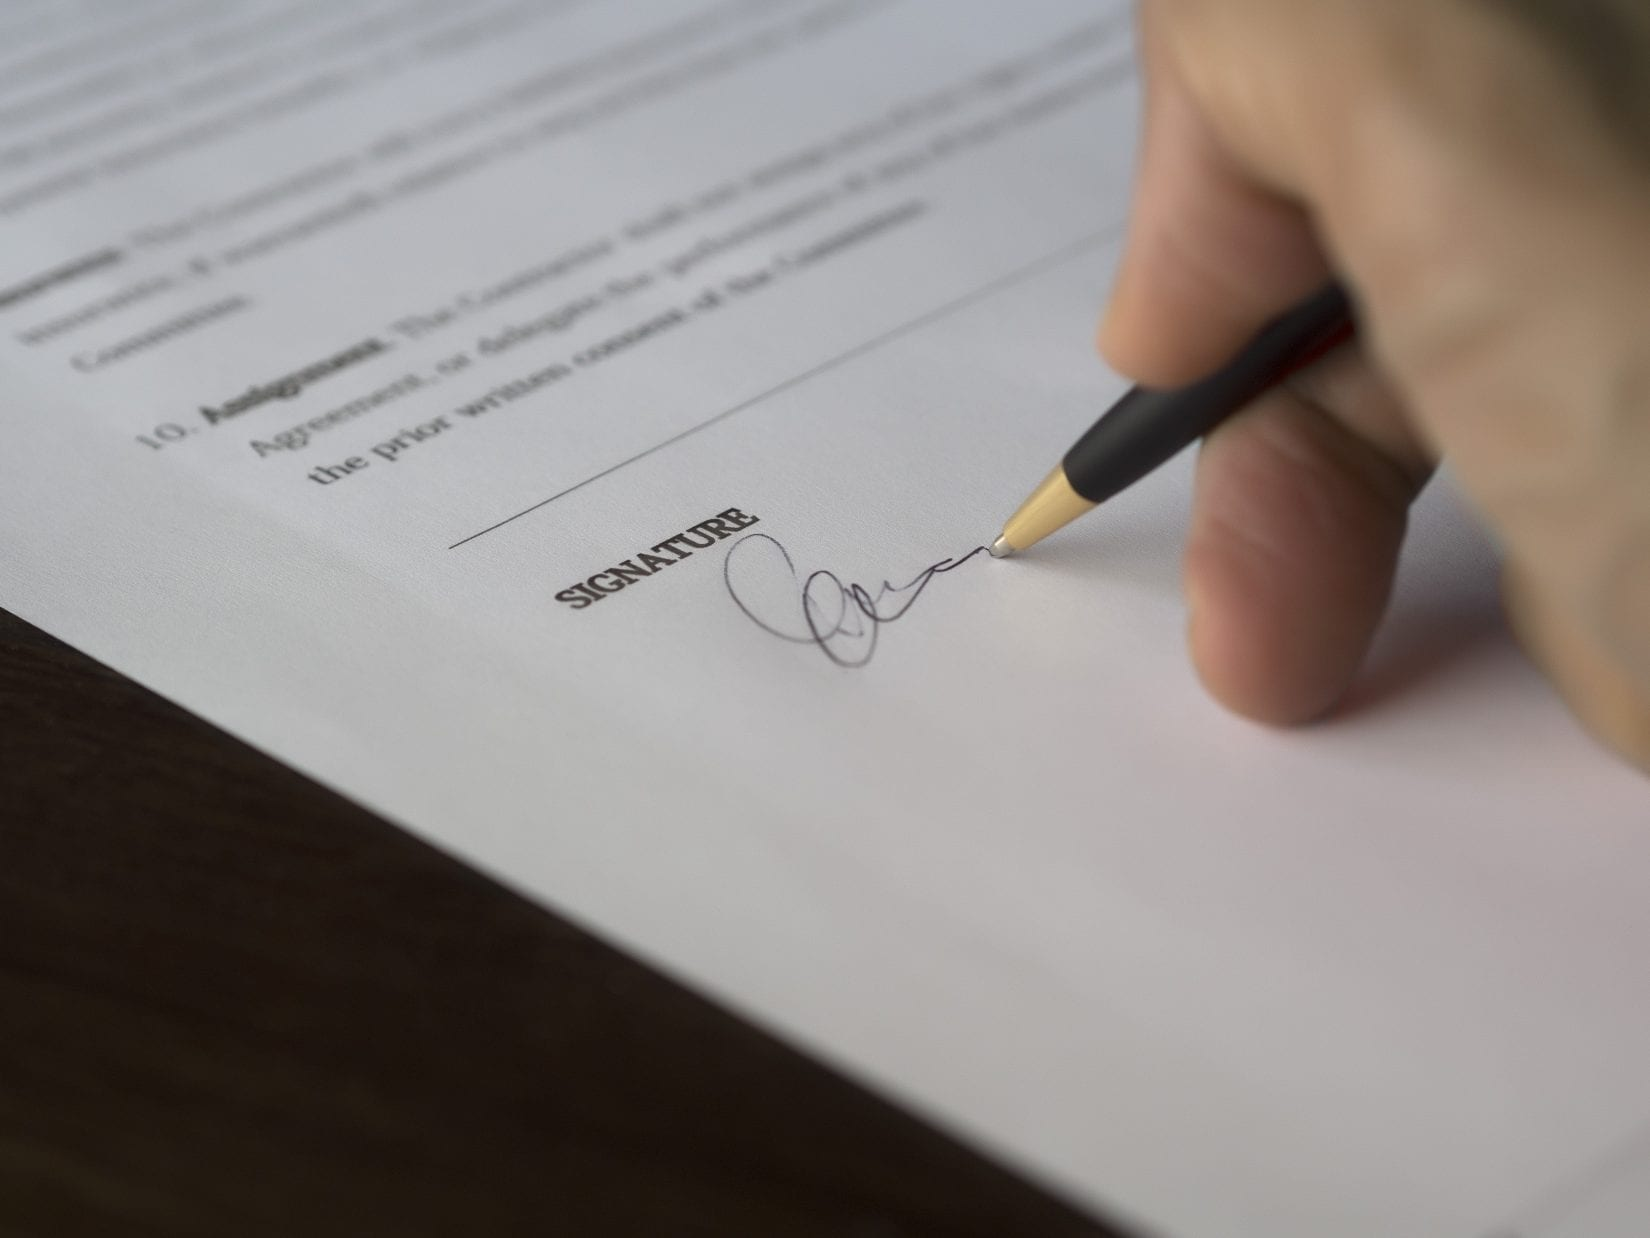 A man signing a subject-free offer for a house purchase